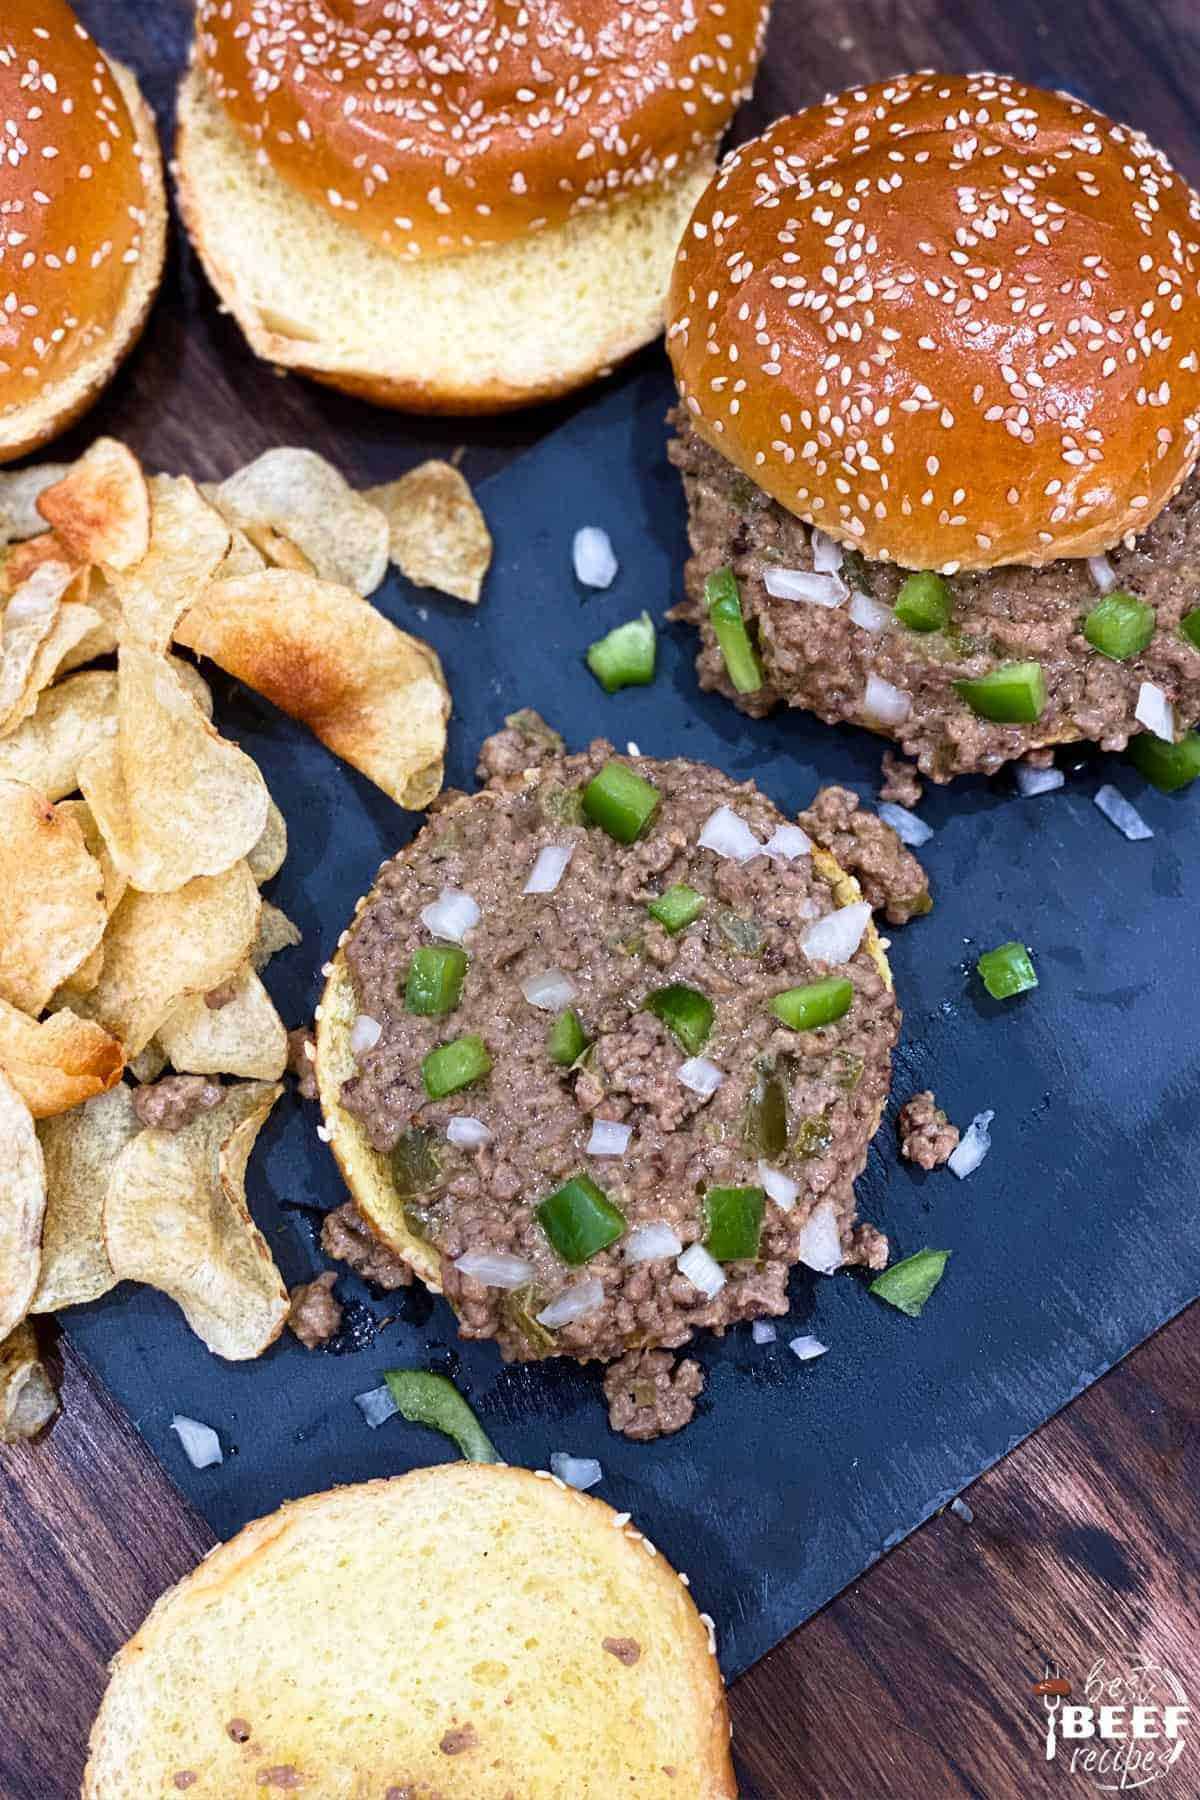 Top-down view of Instant pot philly cheesesteak sloppy joes next to potato chips on a black surface